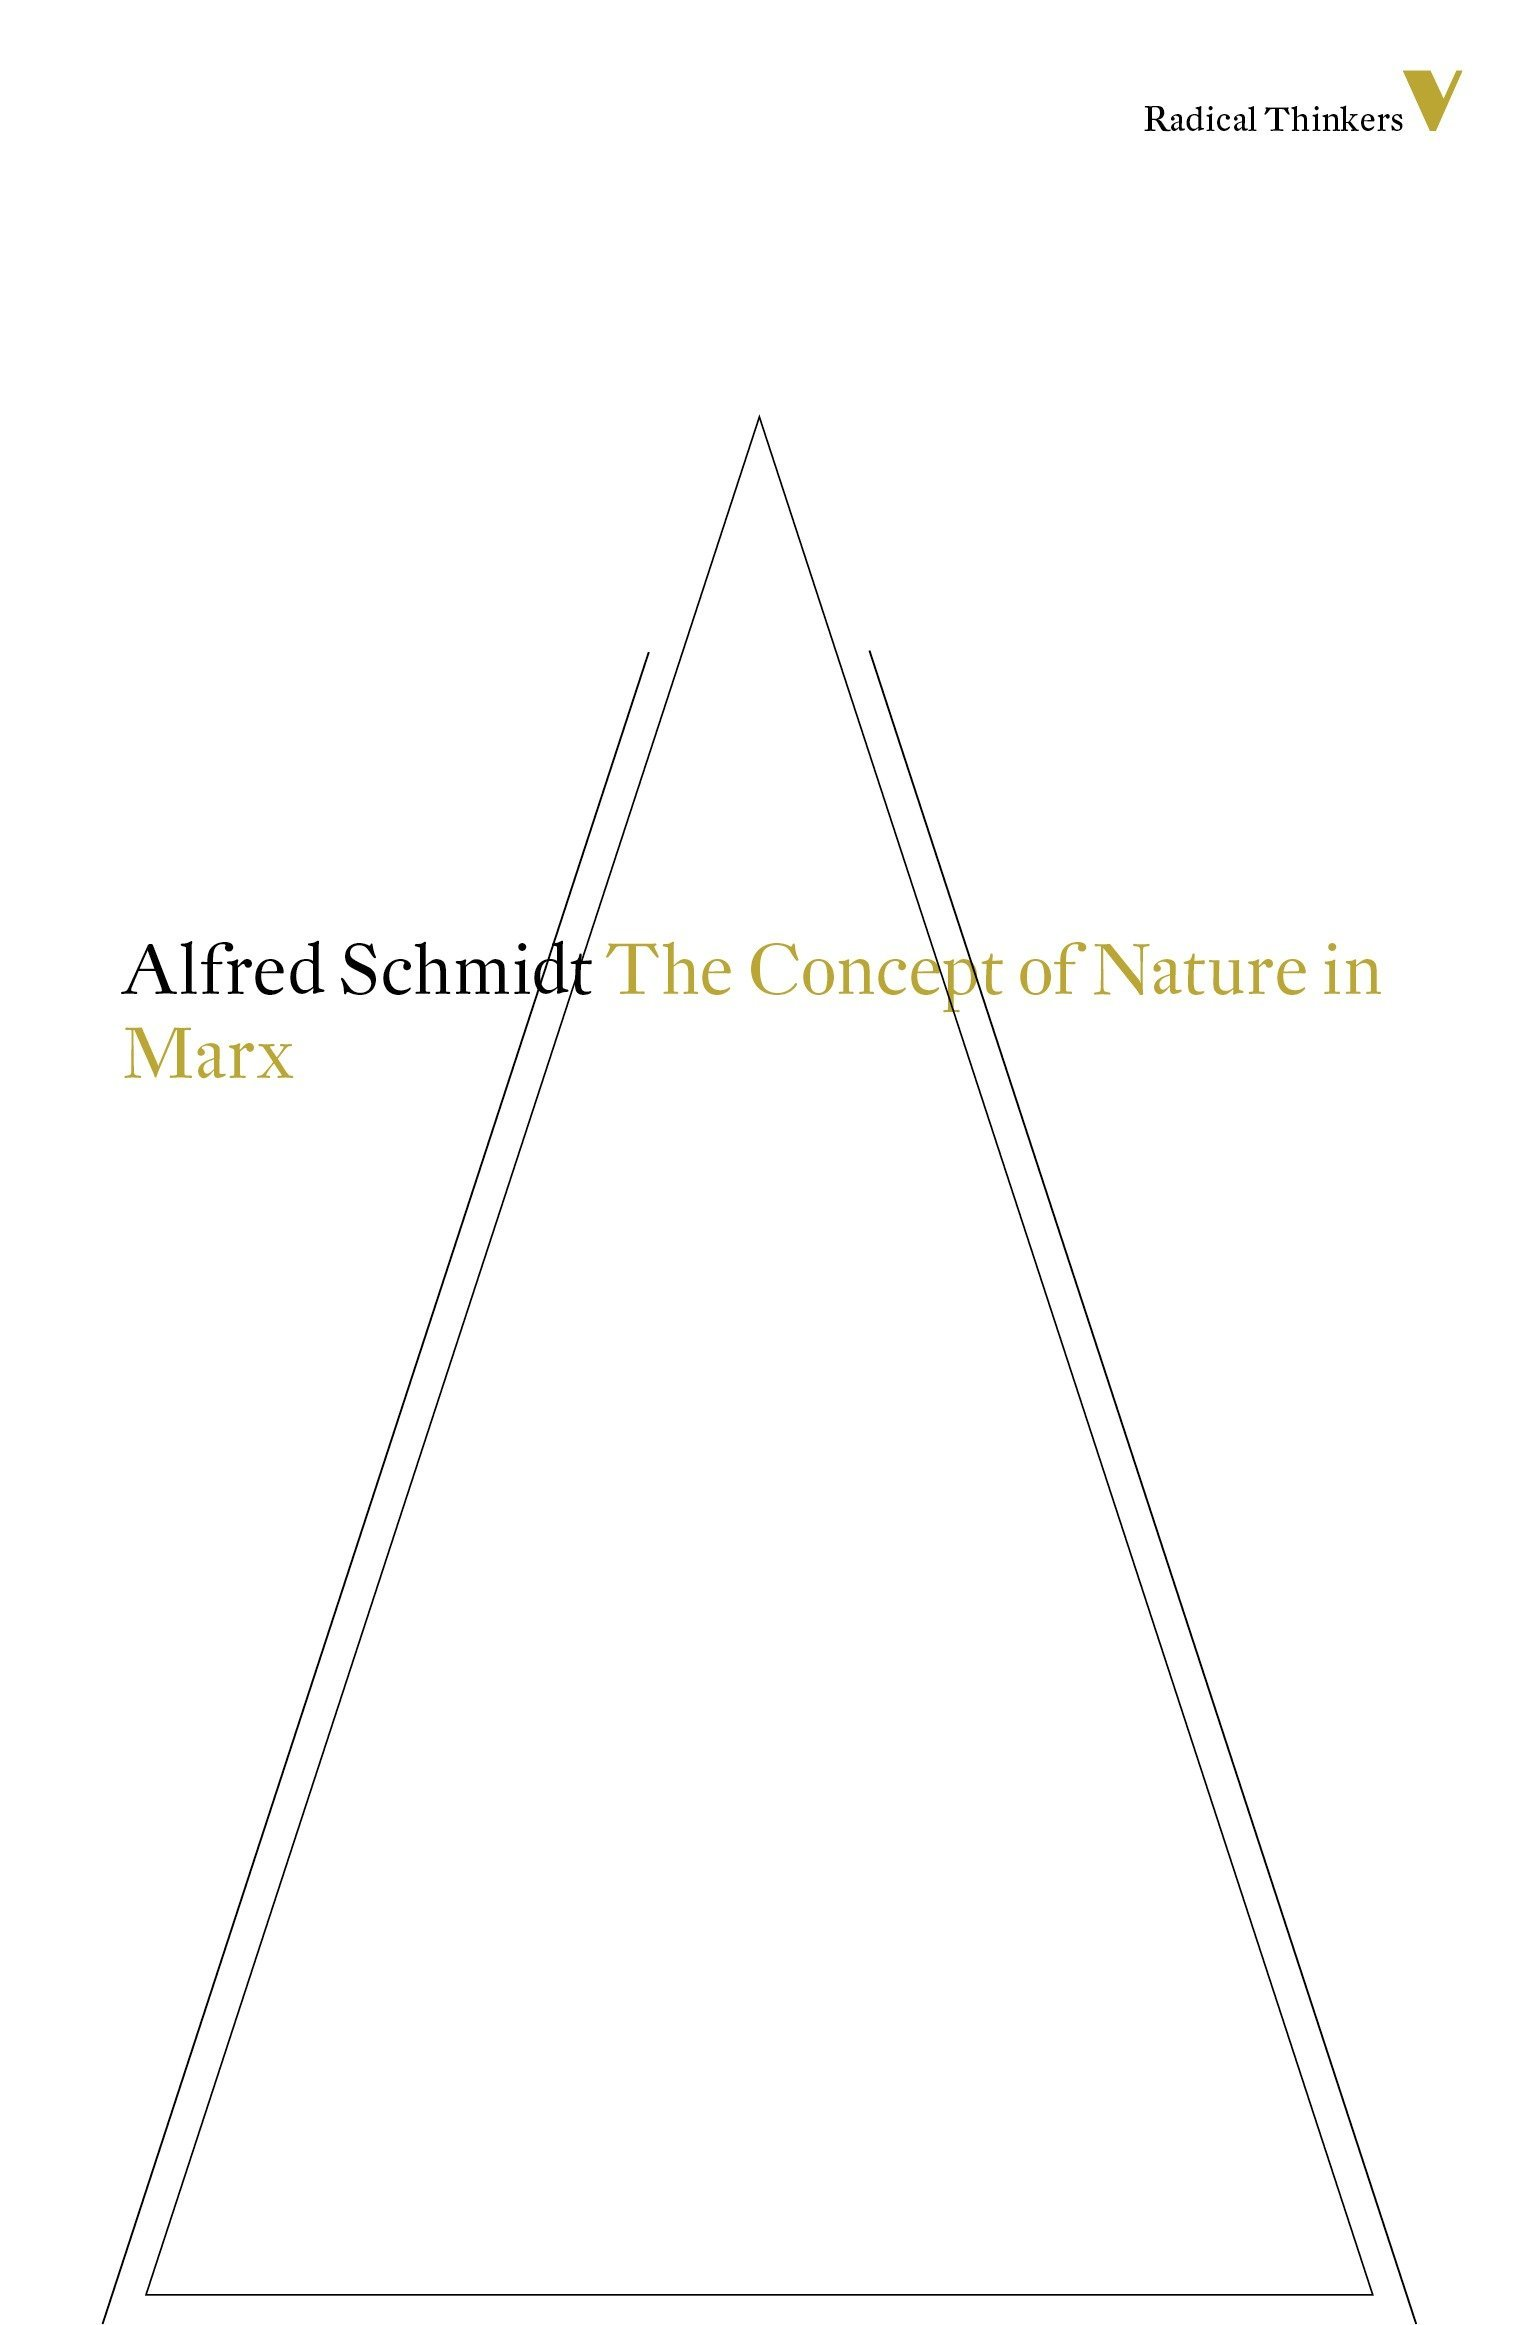 The Concept of Nature in Marx by Alfred Schmidt